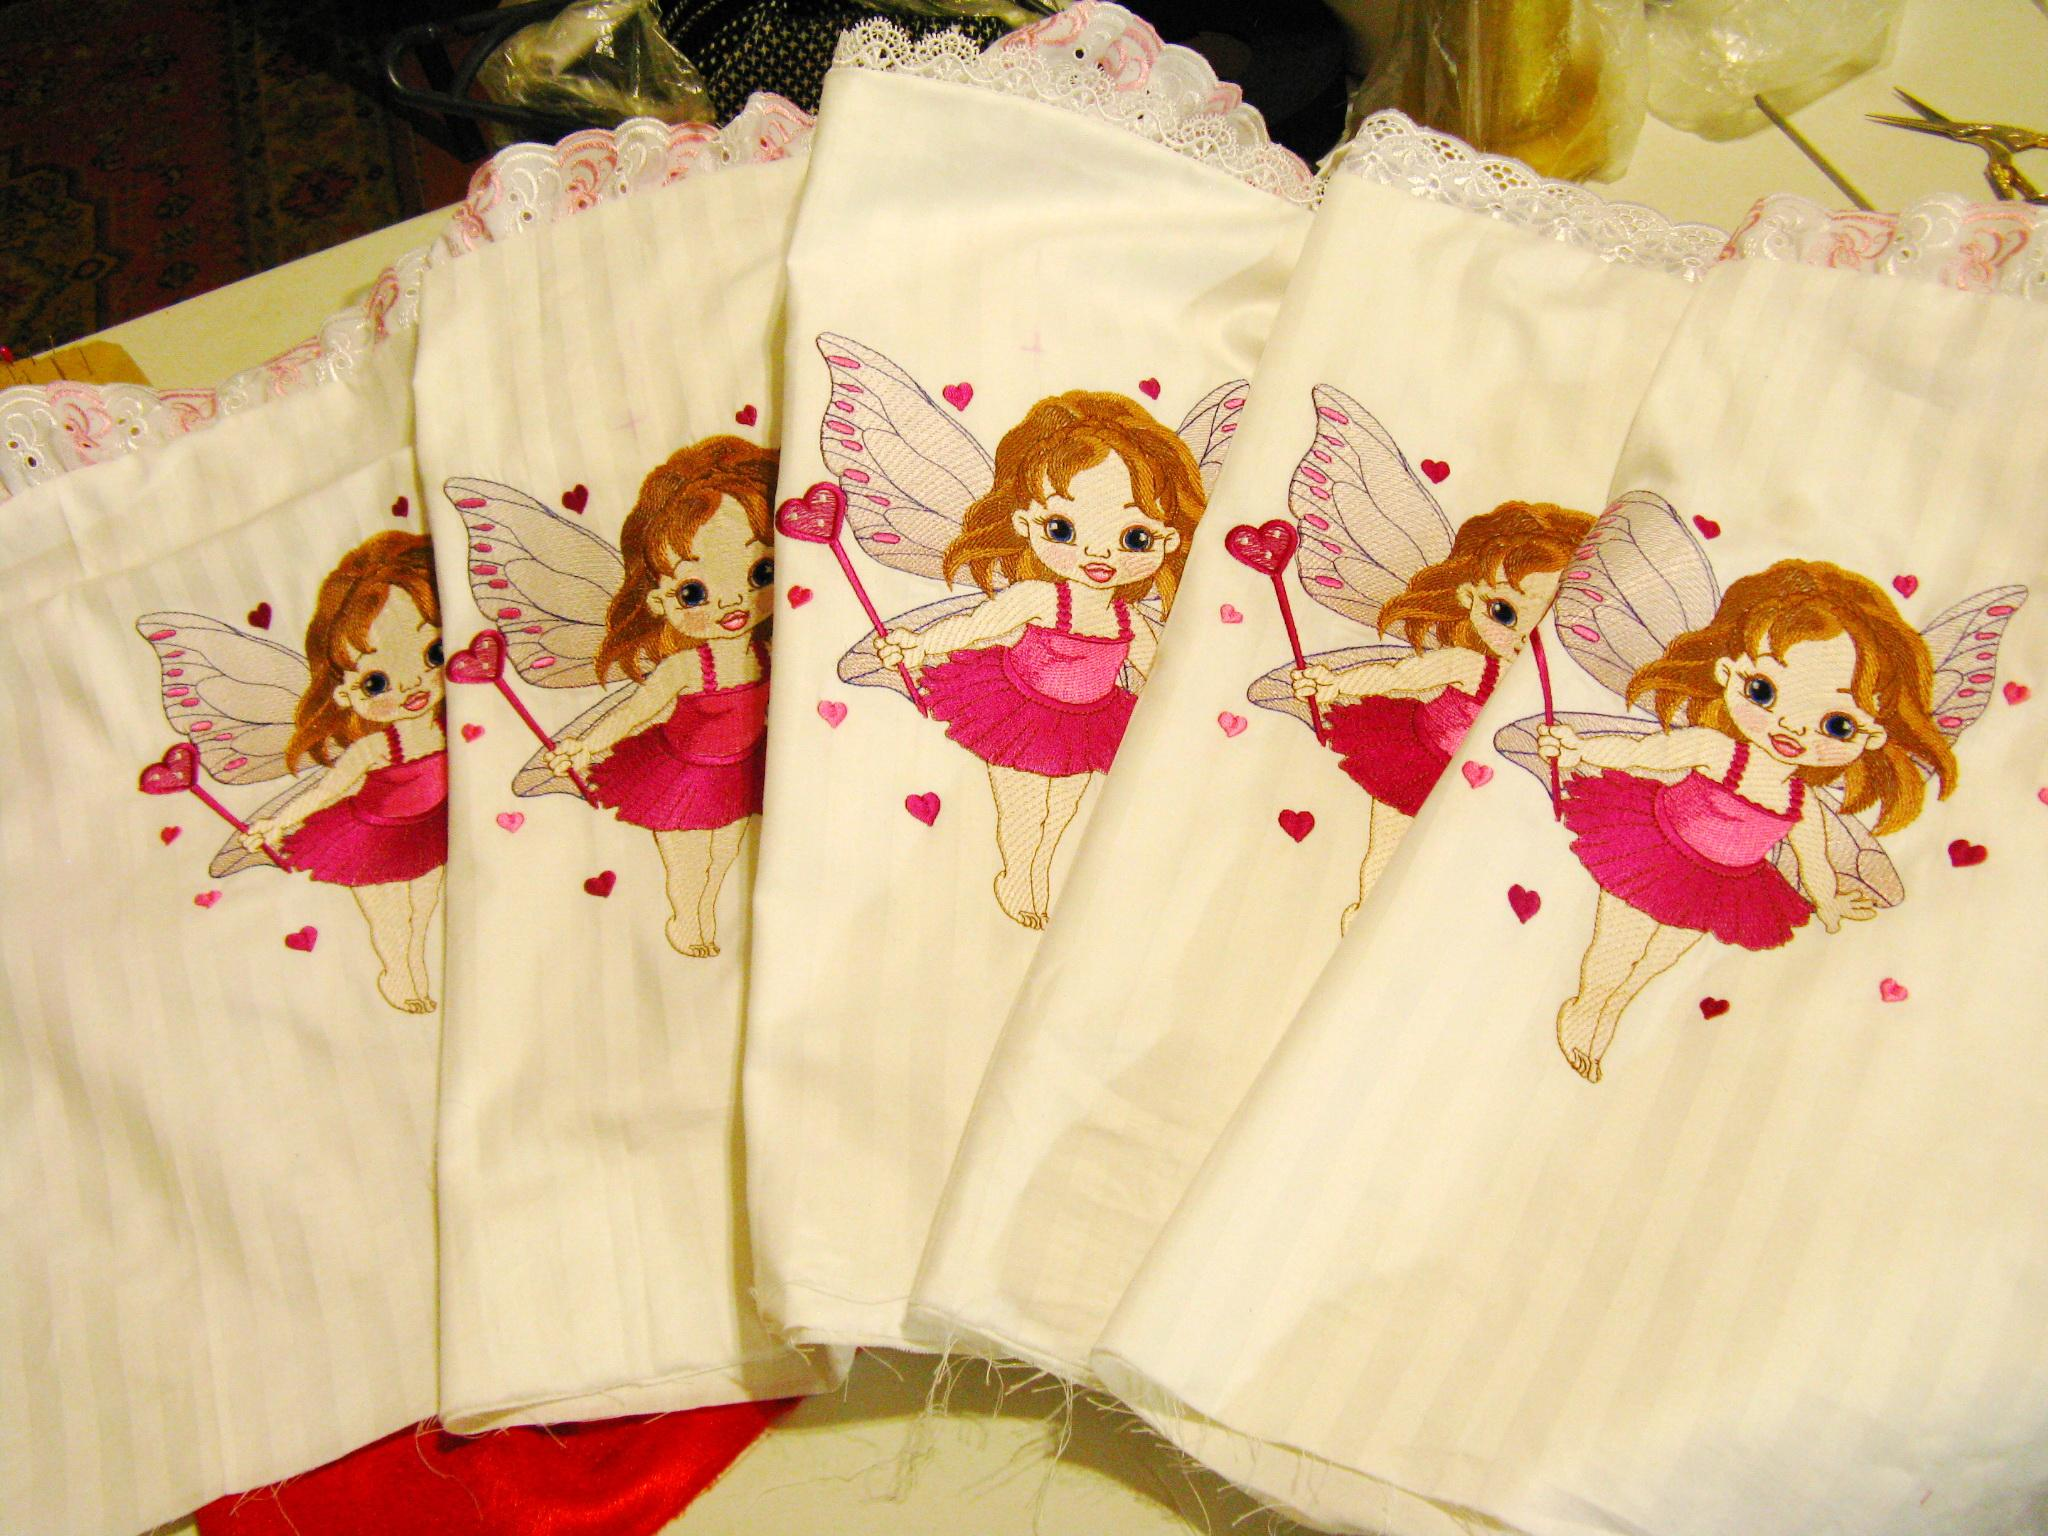 Napkins set with Baby love fairy embroidery design